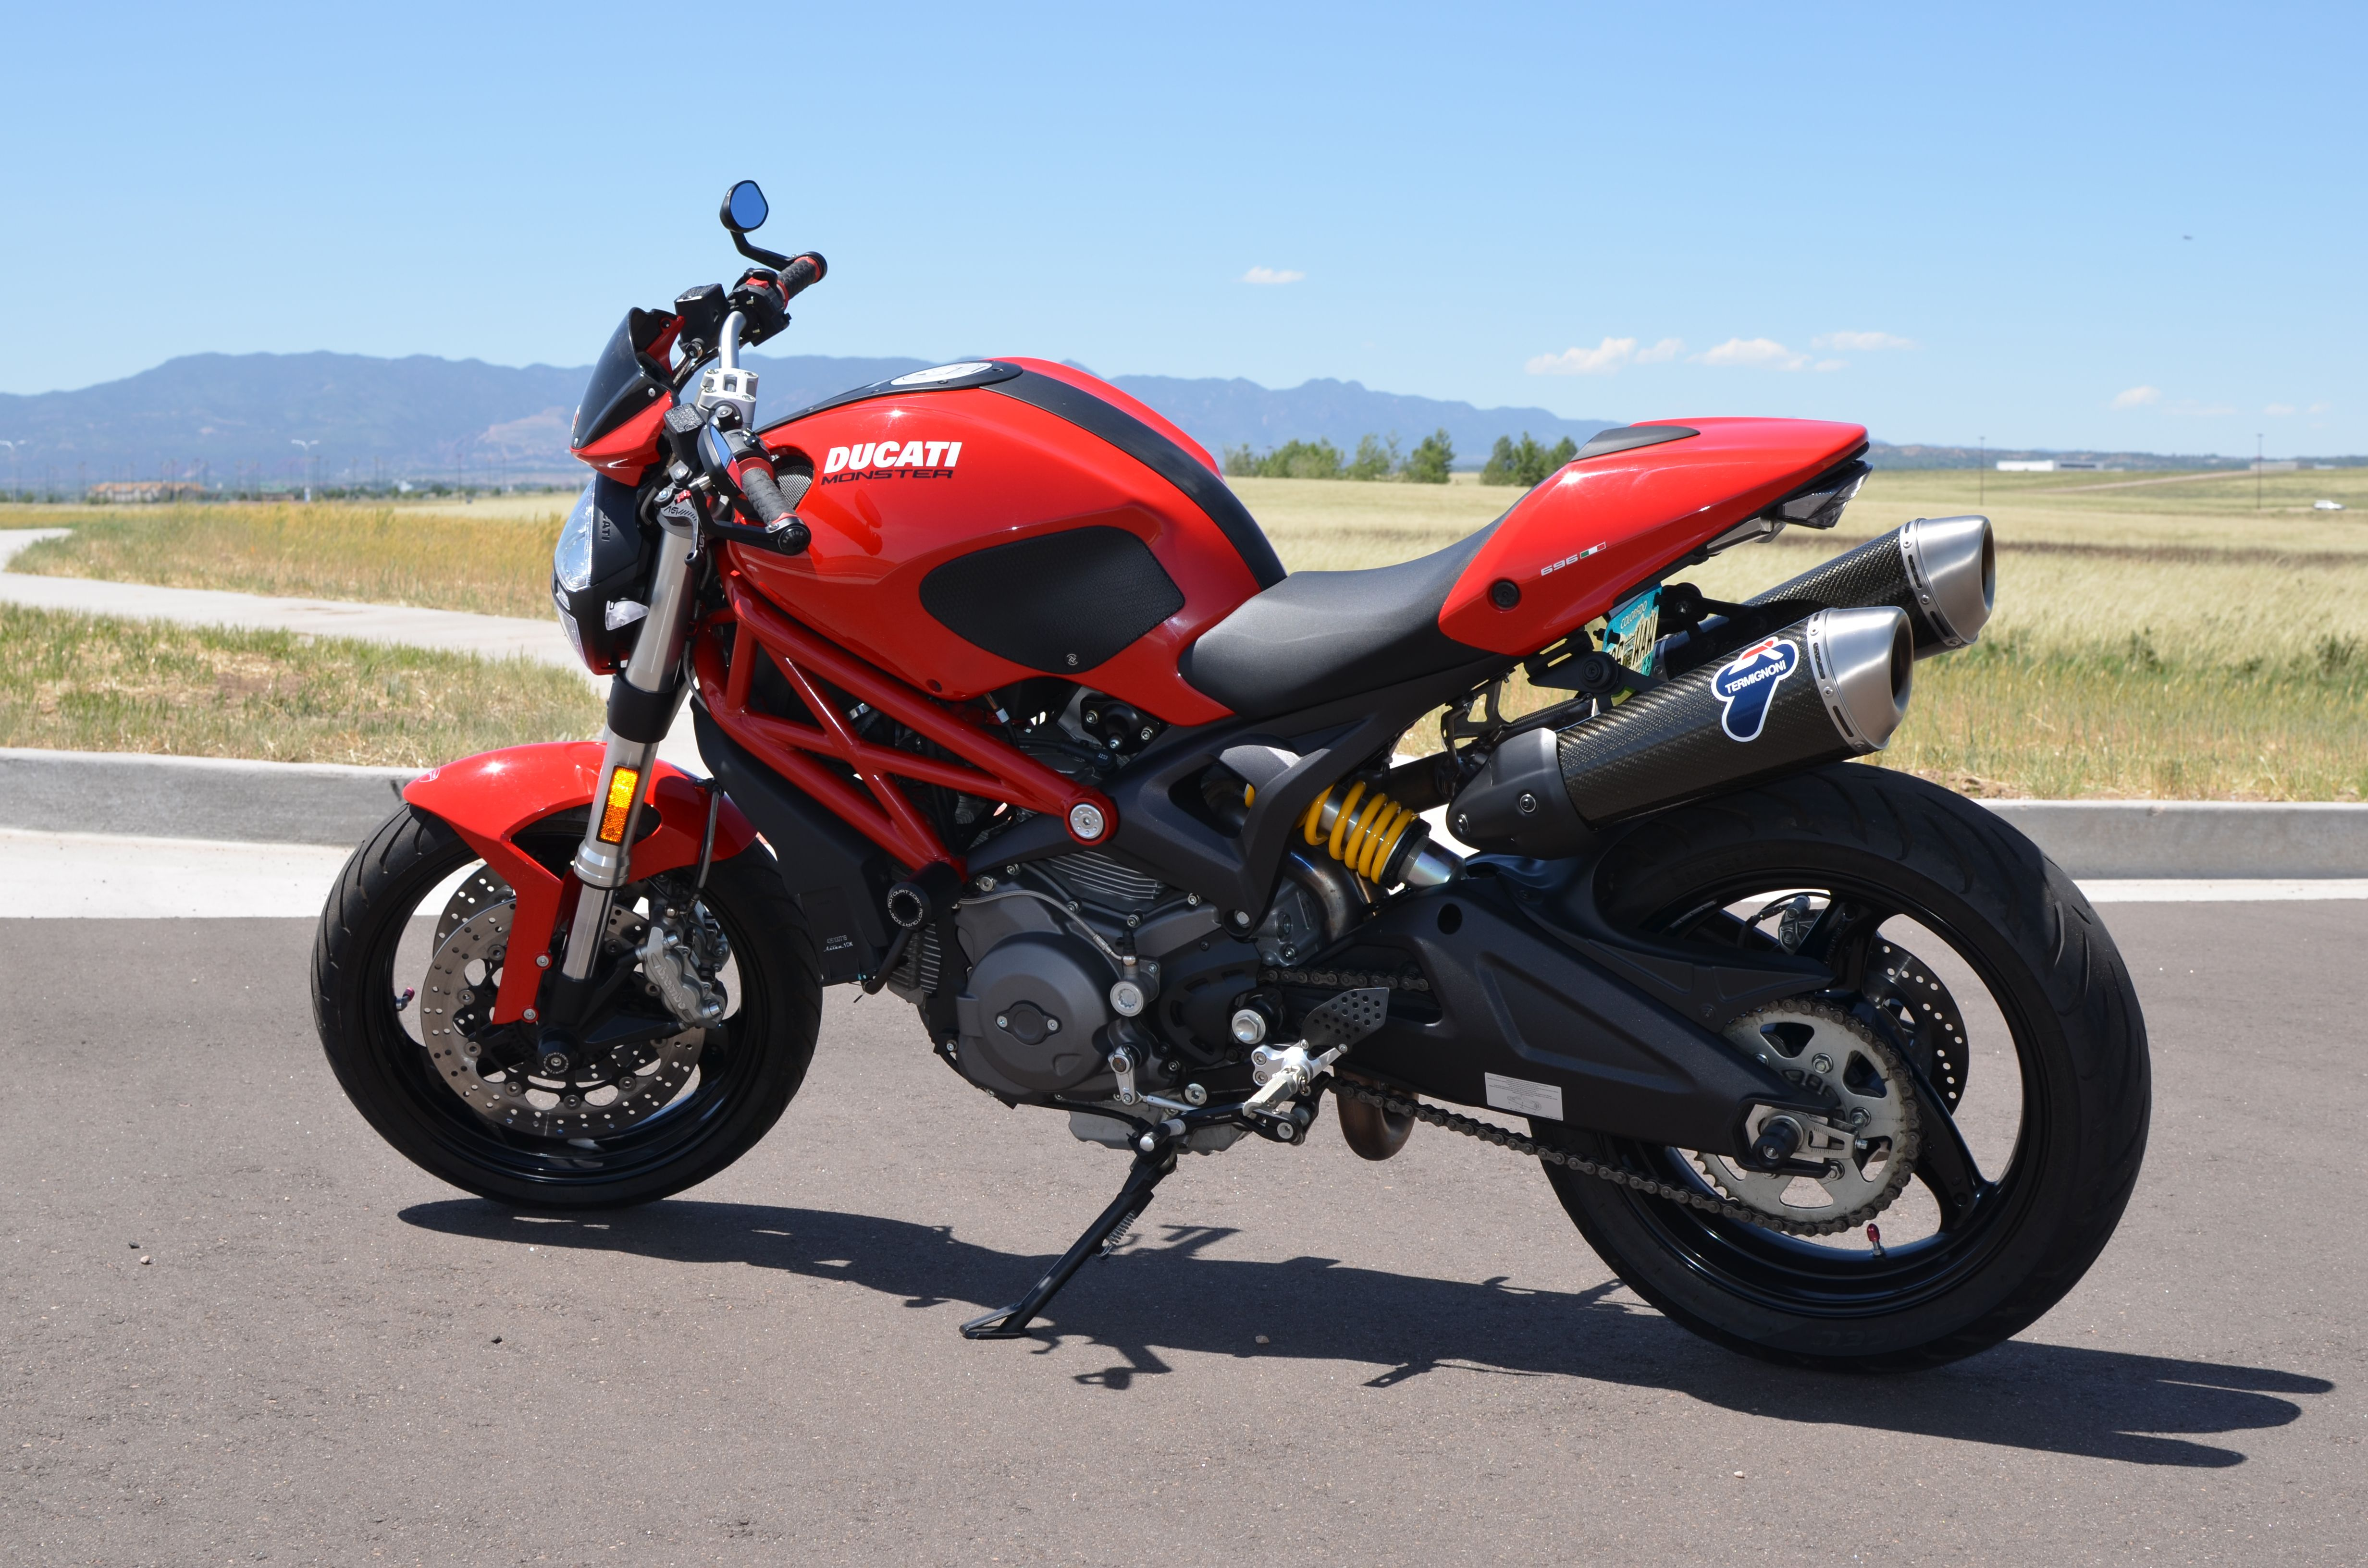 2012 ducati monster 696 - modded with termignoni carbon canisters